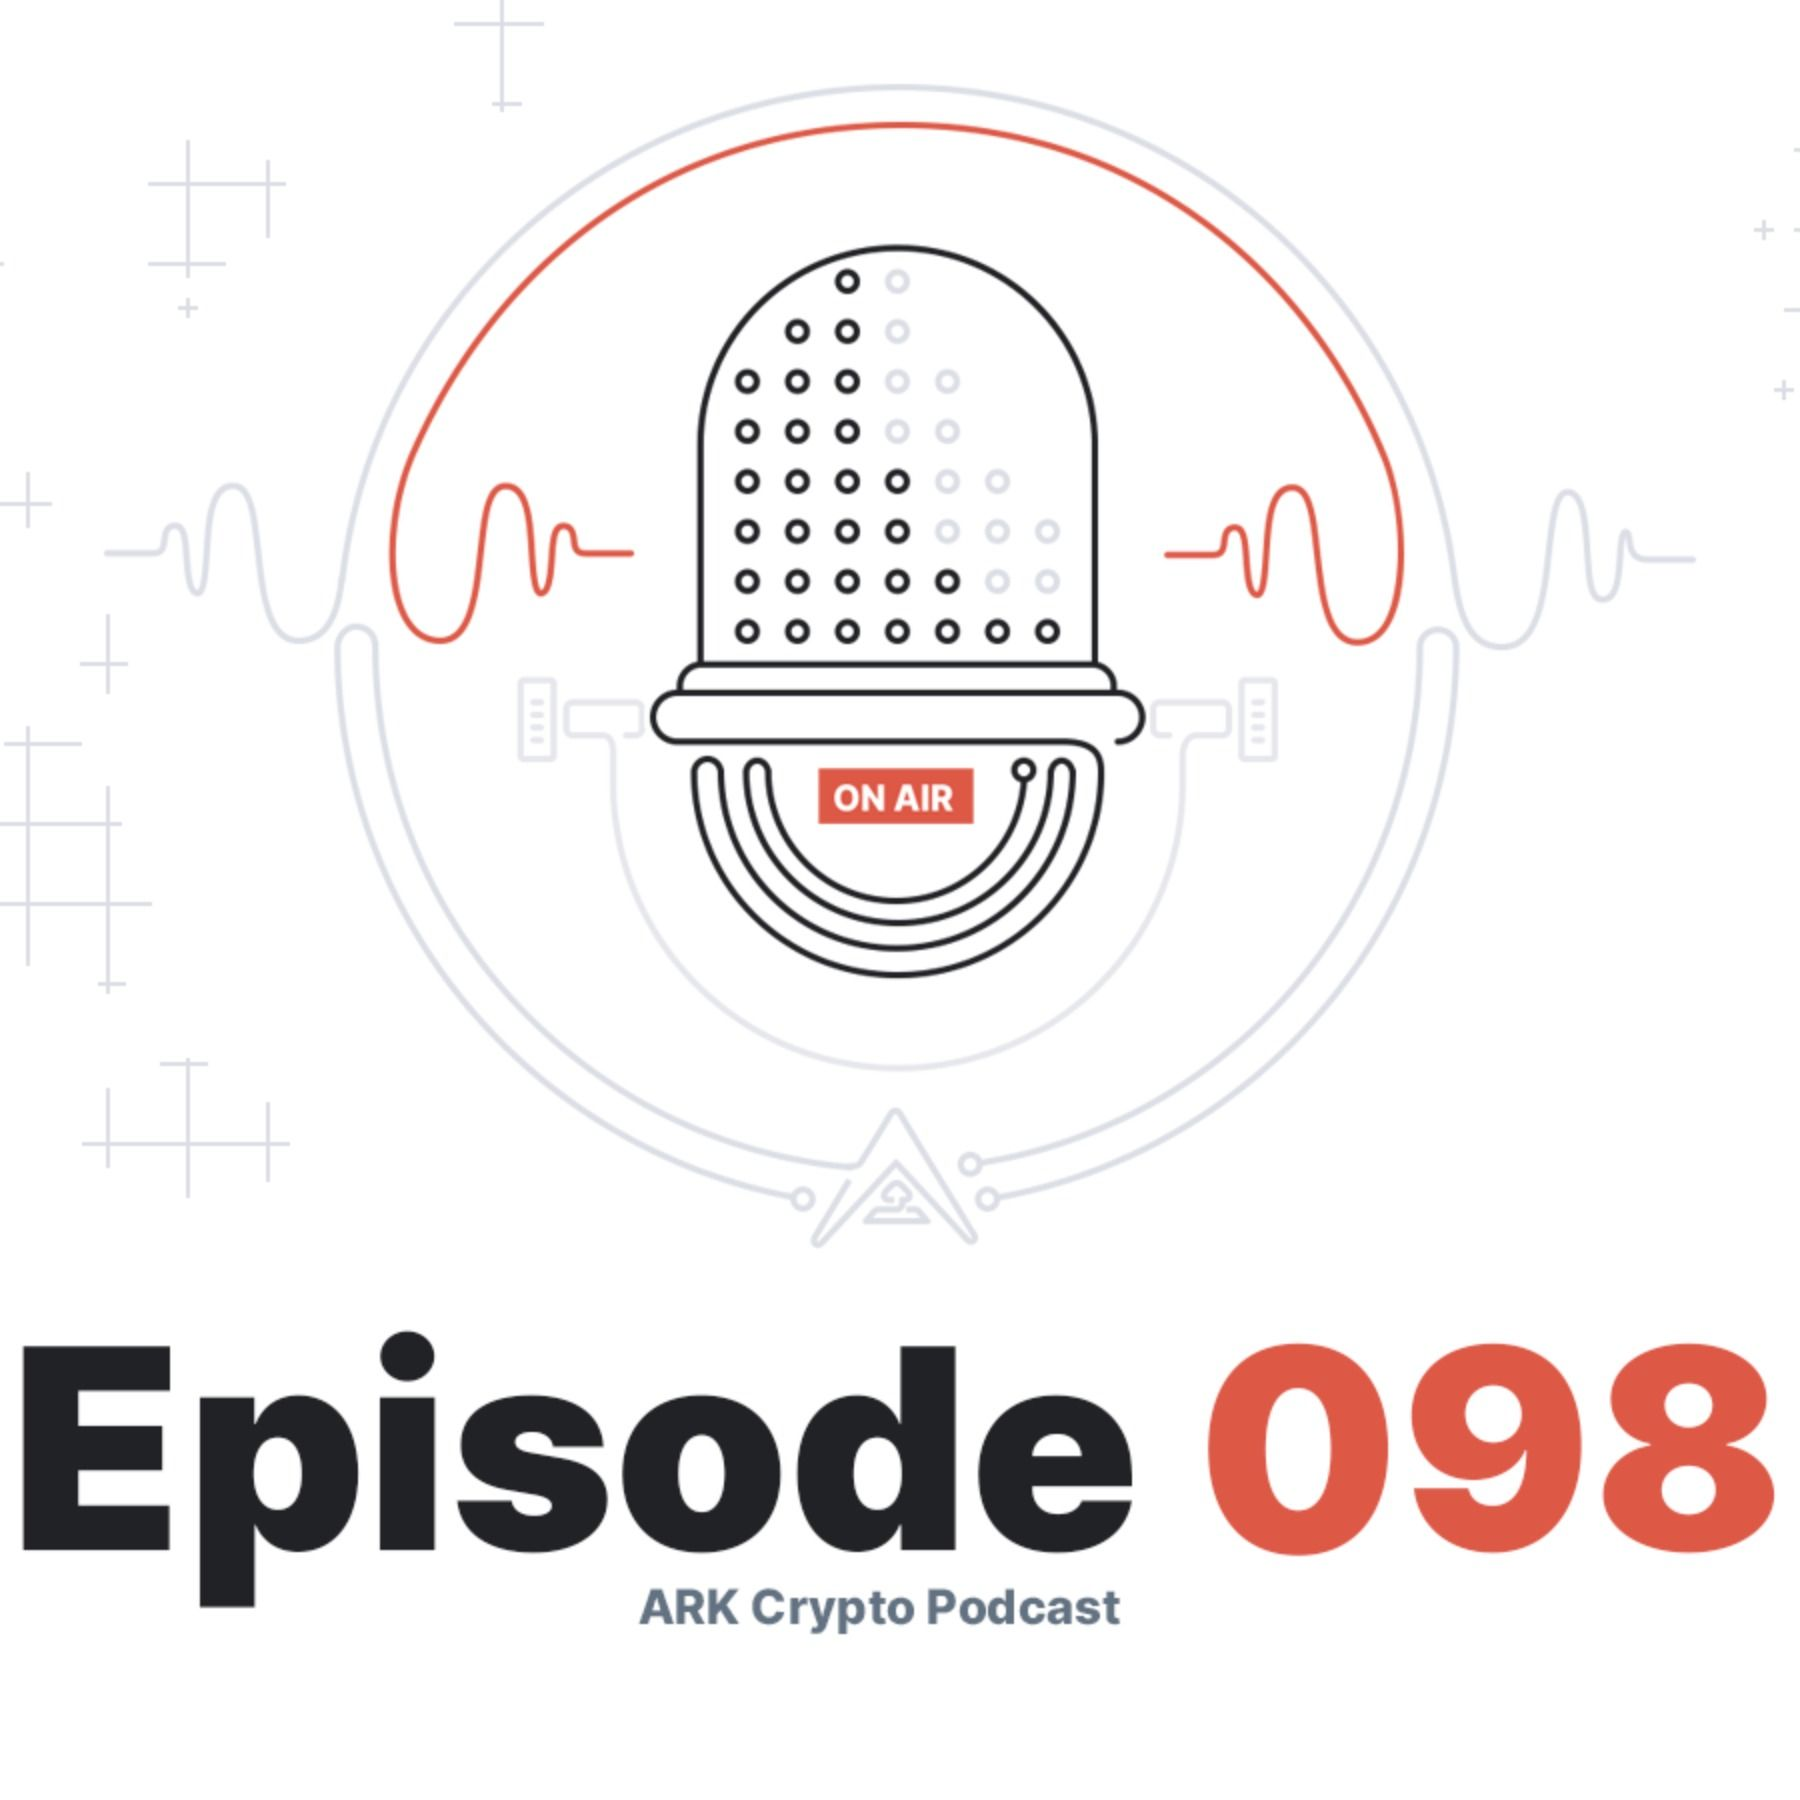 EARN IT Act Update - Blockchain Legal Roundup - ARK Crypto Podcast #098